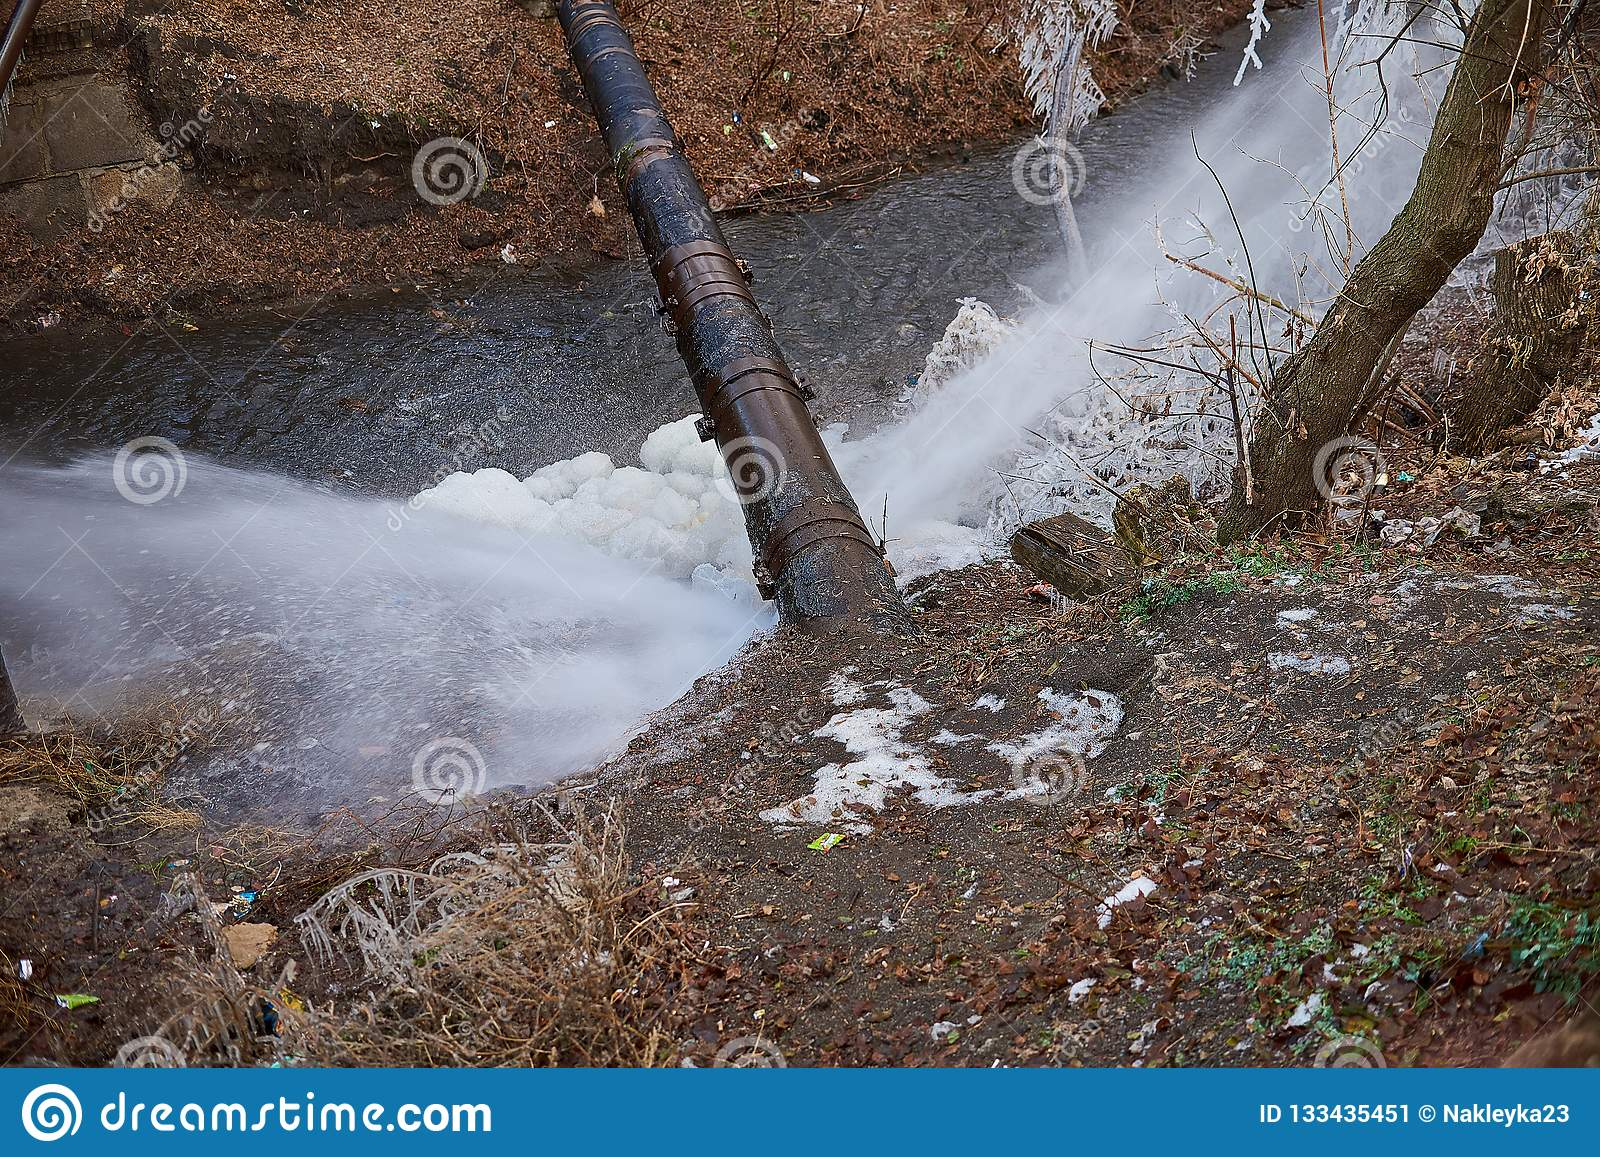 water flow from the pipe